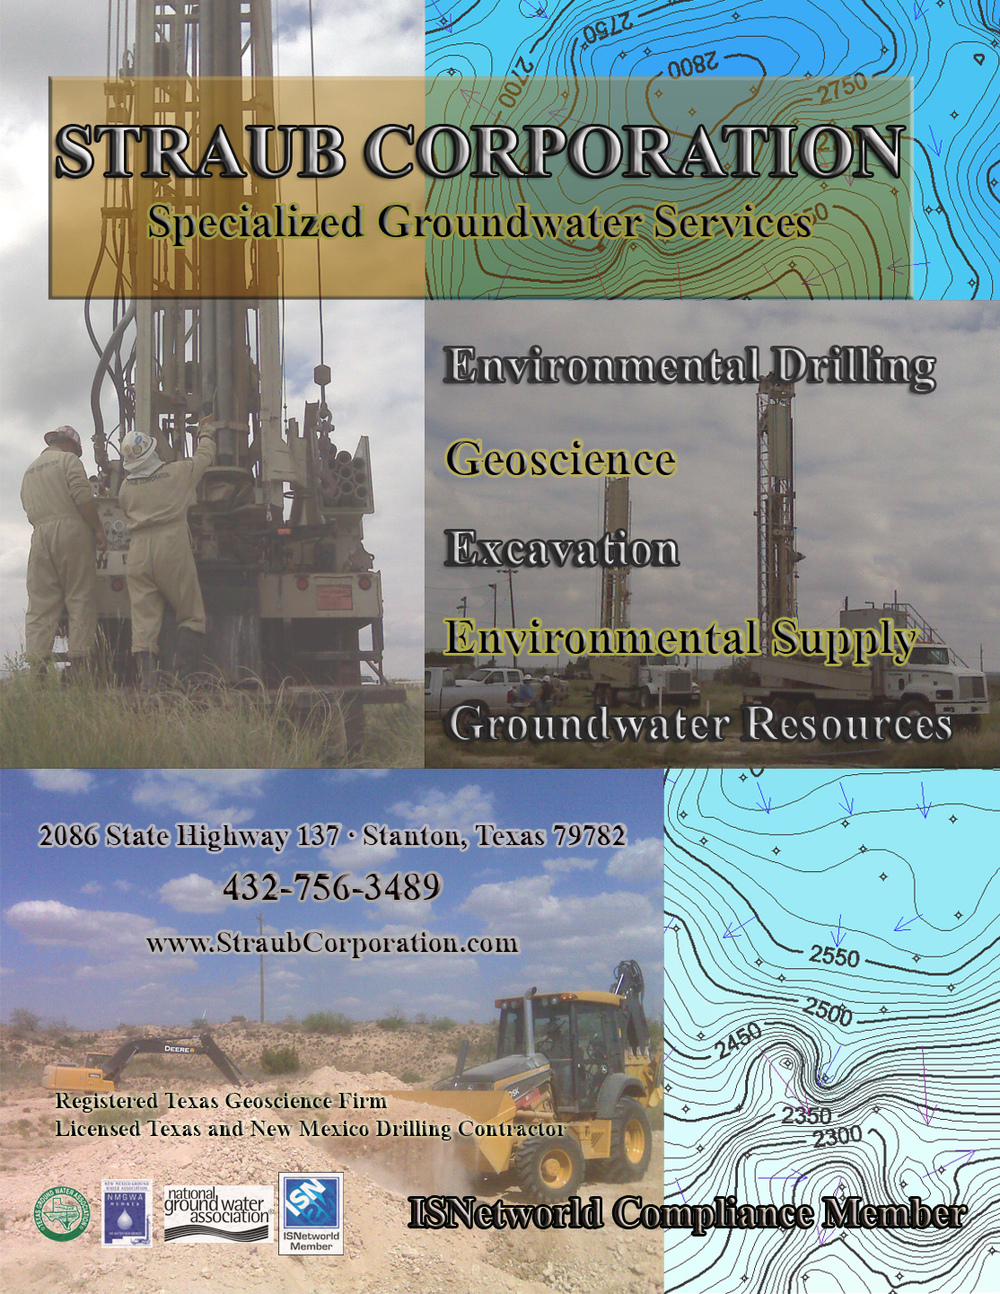 straubcorp cover 9-2012.jpg